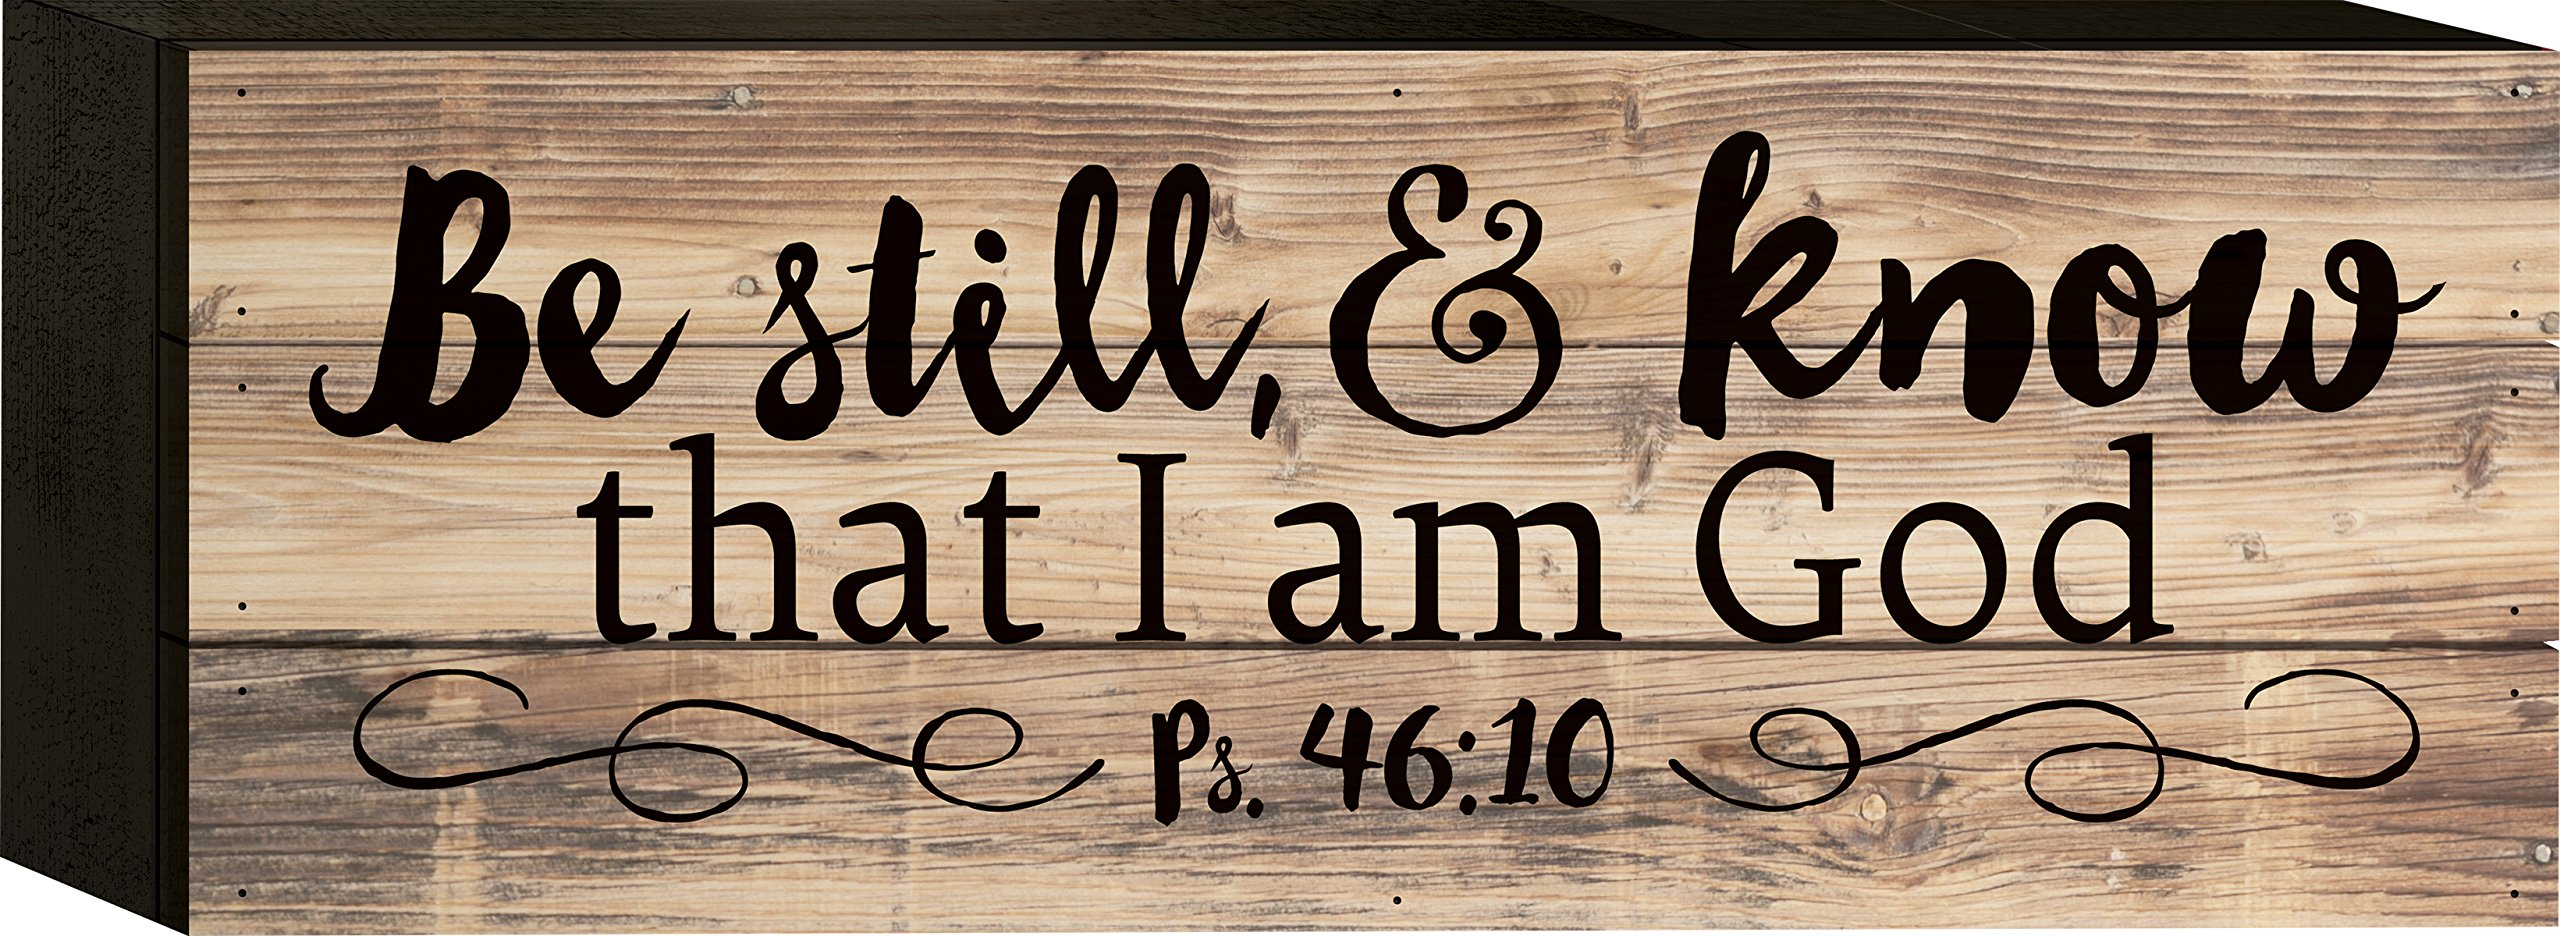 Be Still & Know Psalm 46:10 5 x 12 Wood Block-Style Wall Art Sign Plaque